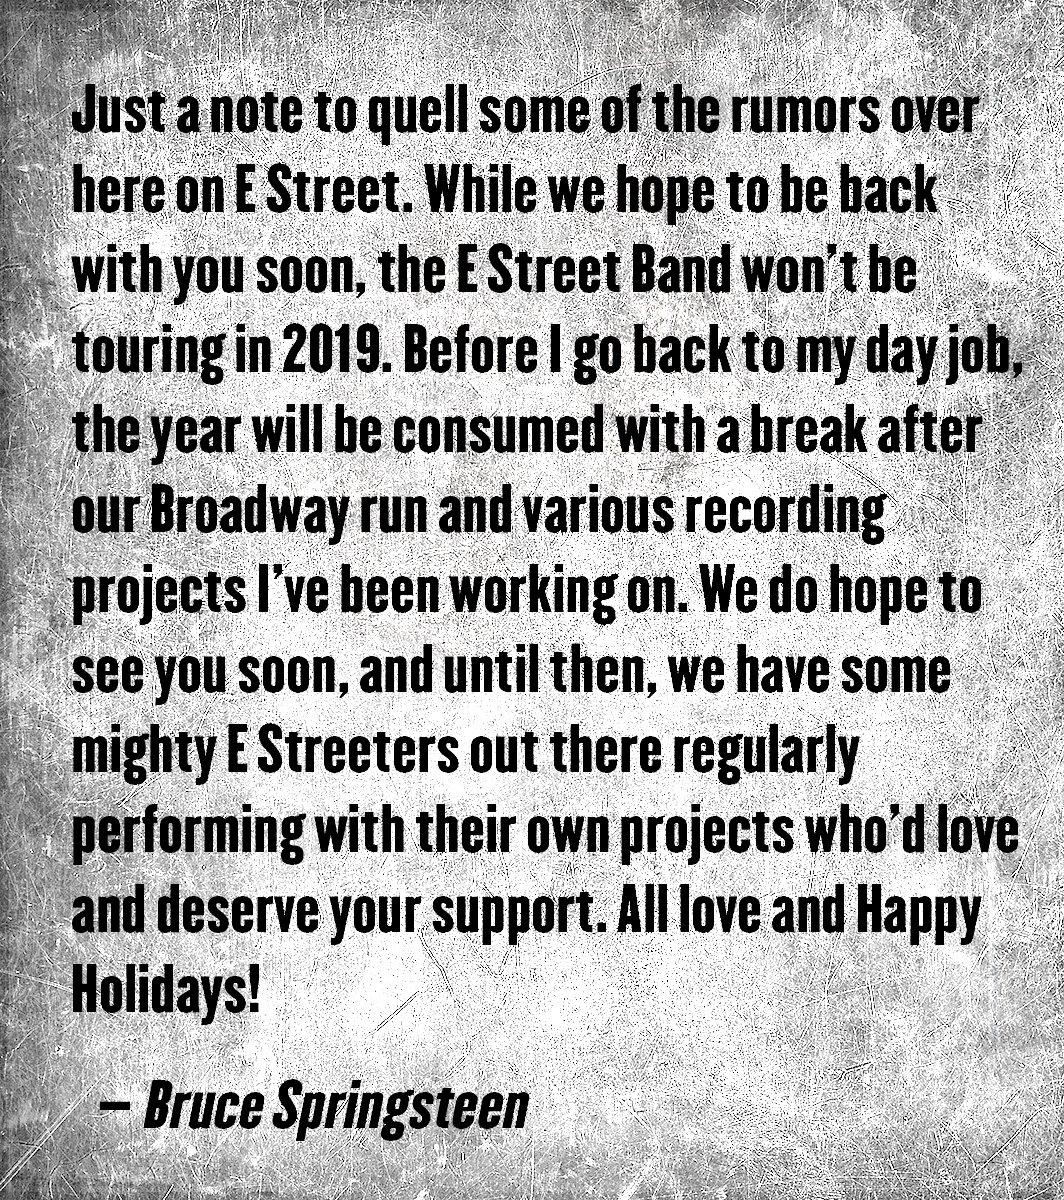 springsteen 2019 statement